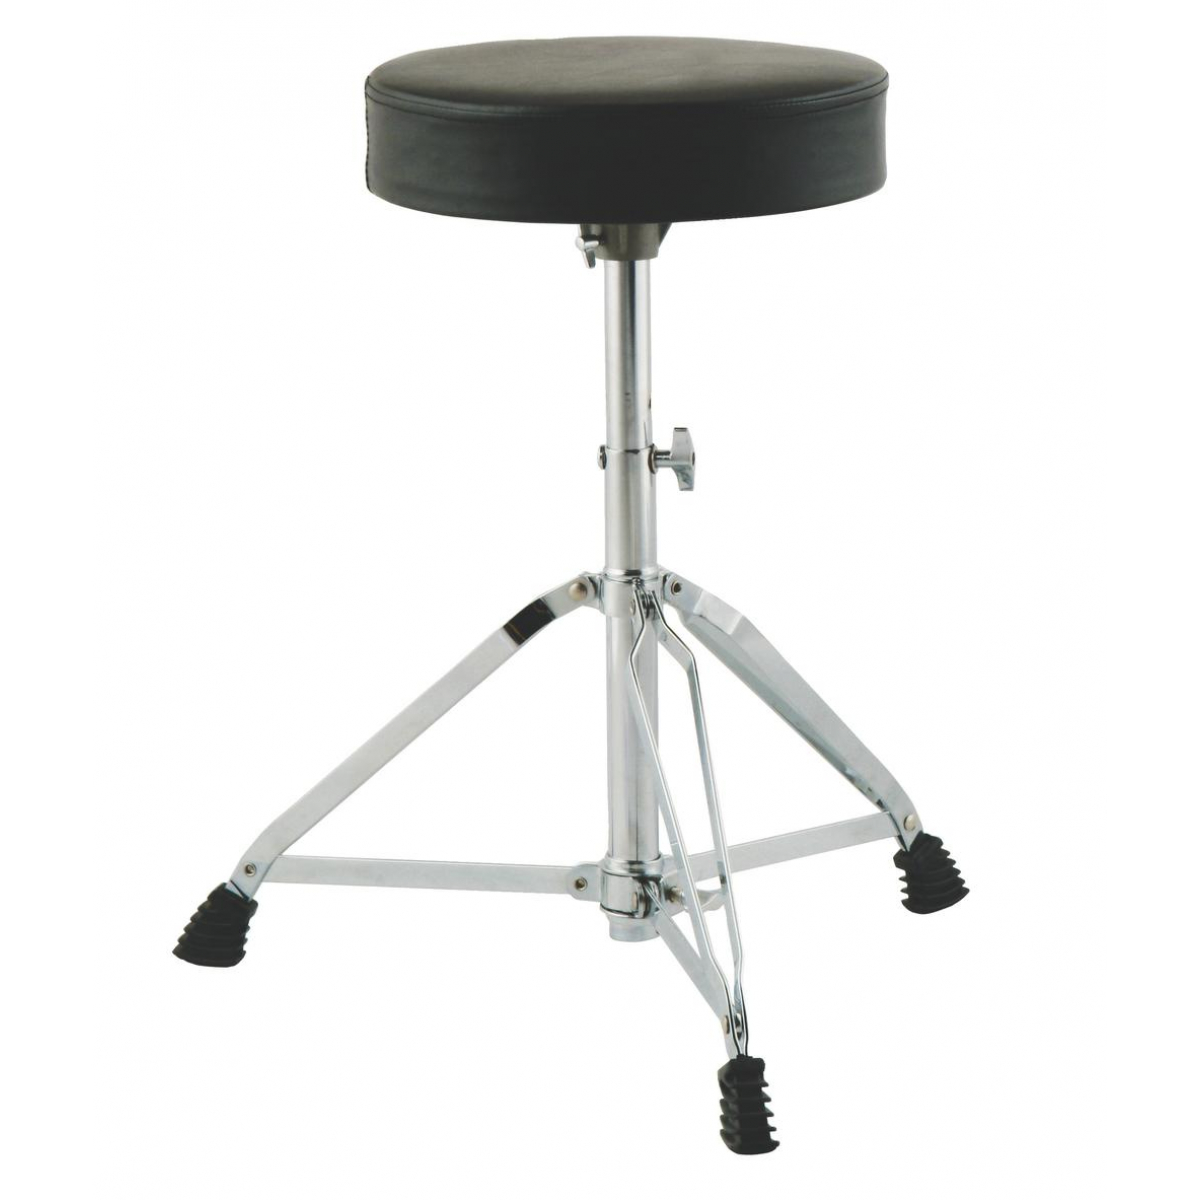 Double-Braced Drum Throne by The Music People Inc.